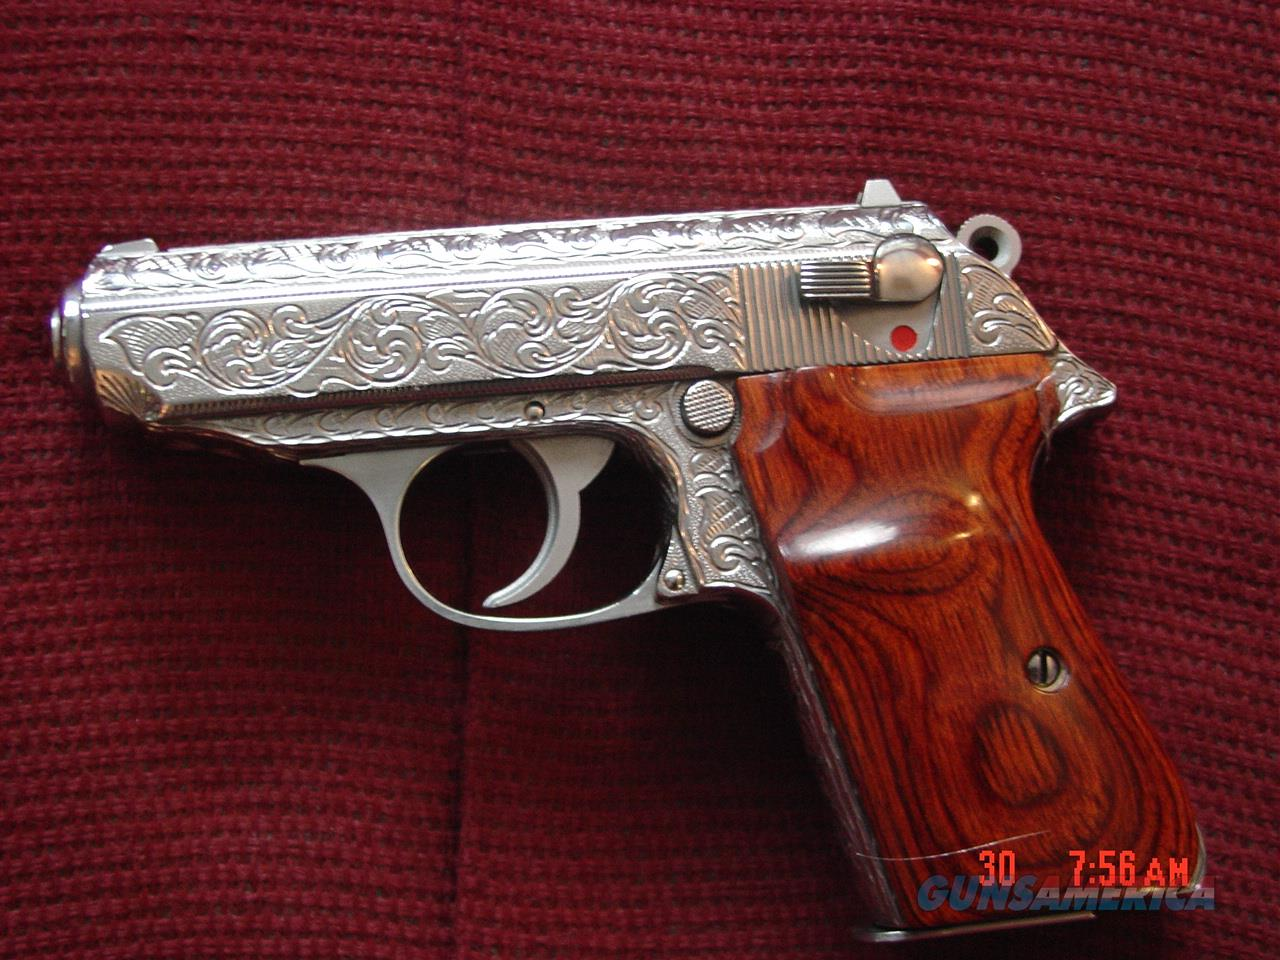 Walther PPK/S 380-Interarms,fully engraved by Flannery Engraving,polished &